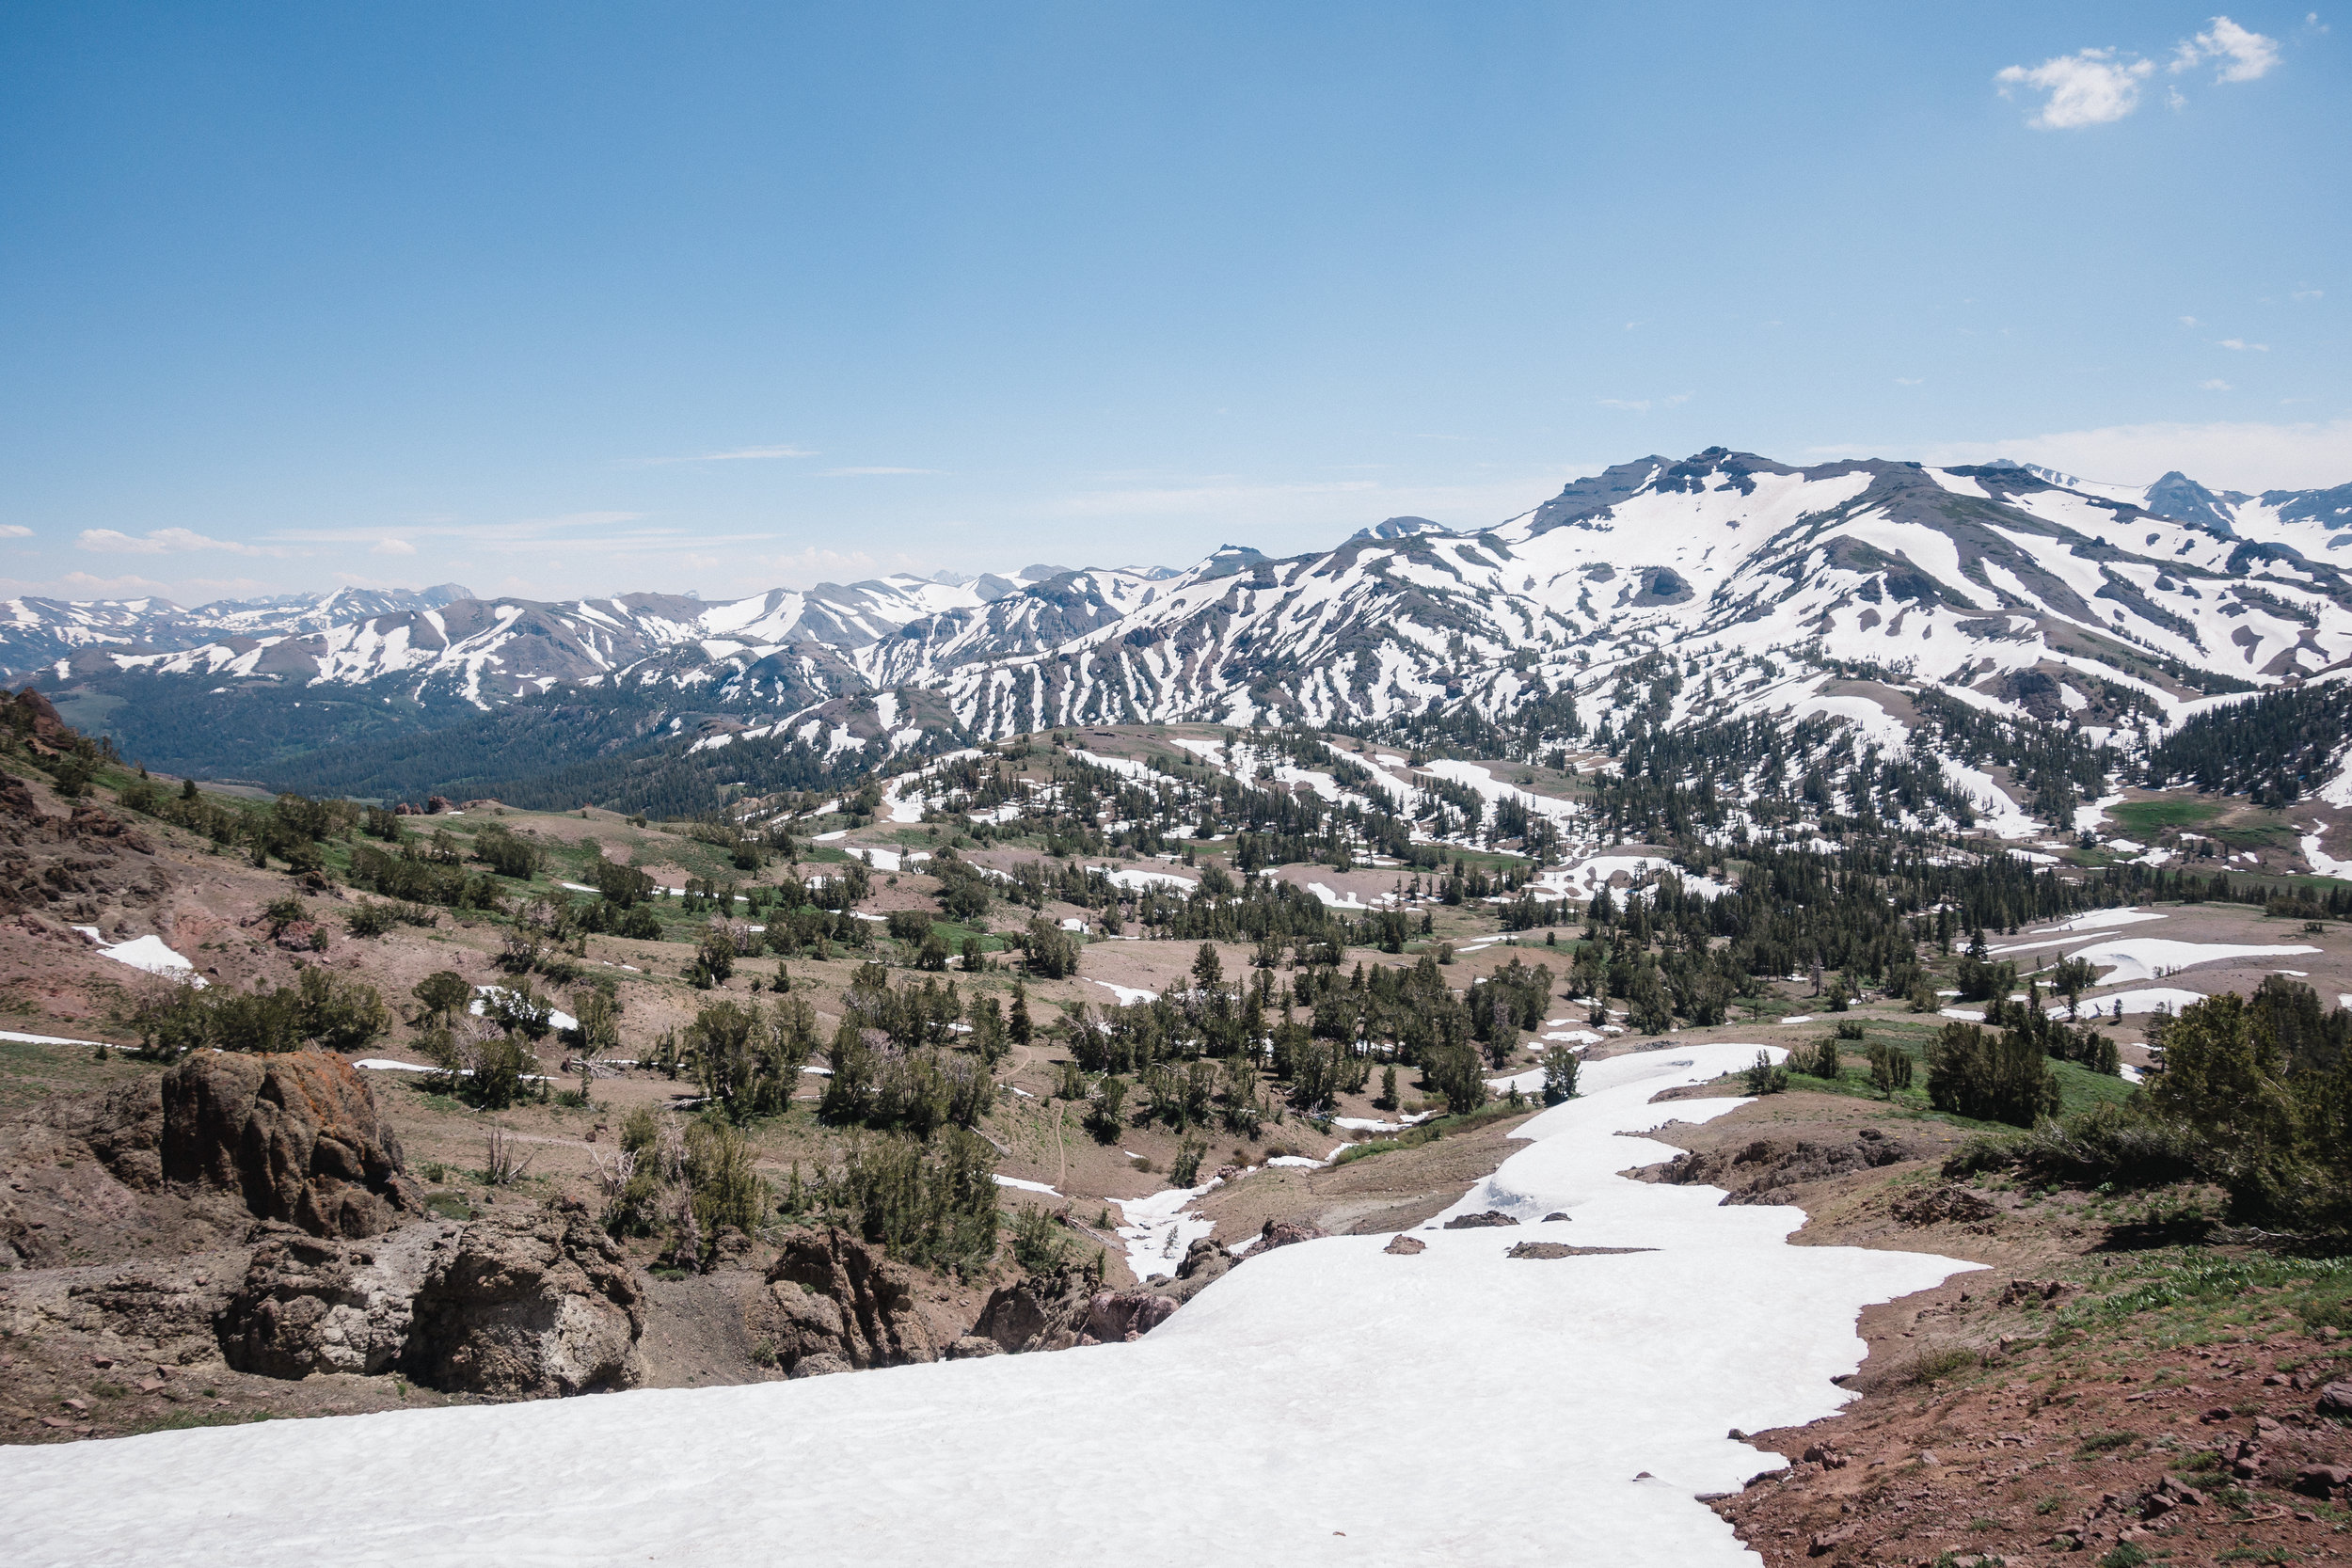 Looking down towards Sonora Pass (see the trail in the center).